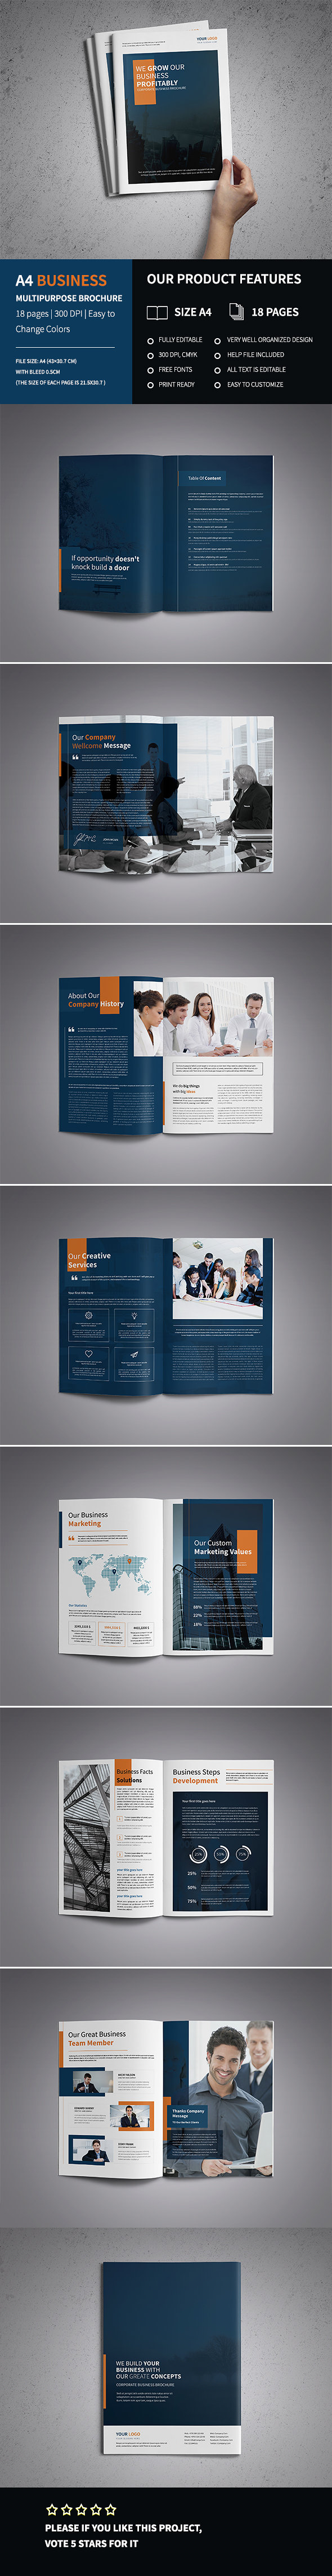 A4 Corporate Business Brochure Template